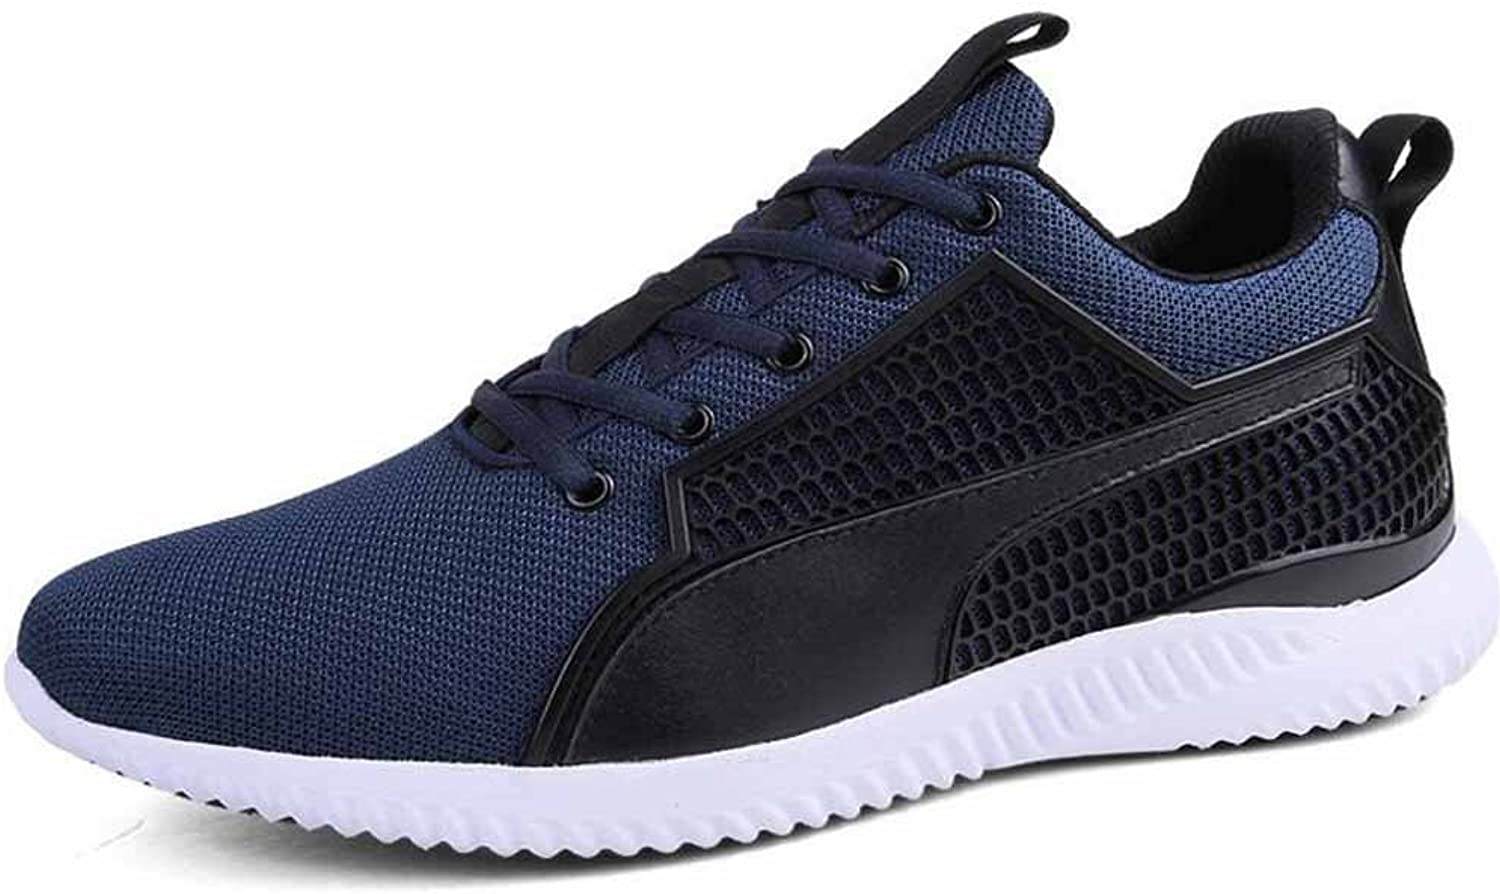 Men Breathable Running shoes Hidden Heel Autumn Casual Mesh shoes Lifts Athletic shoes